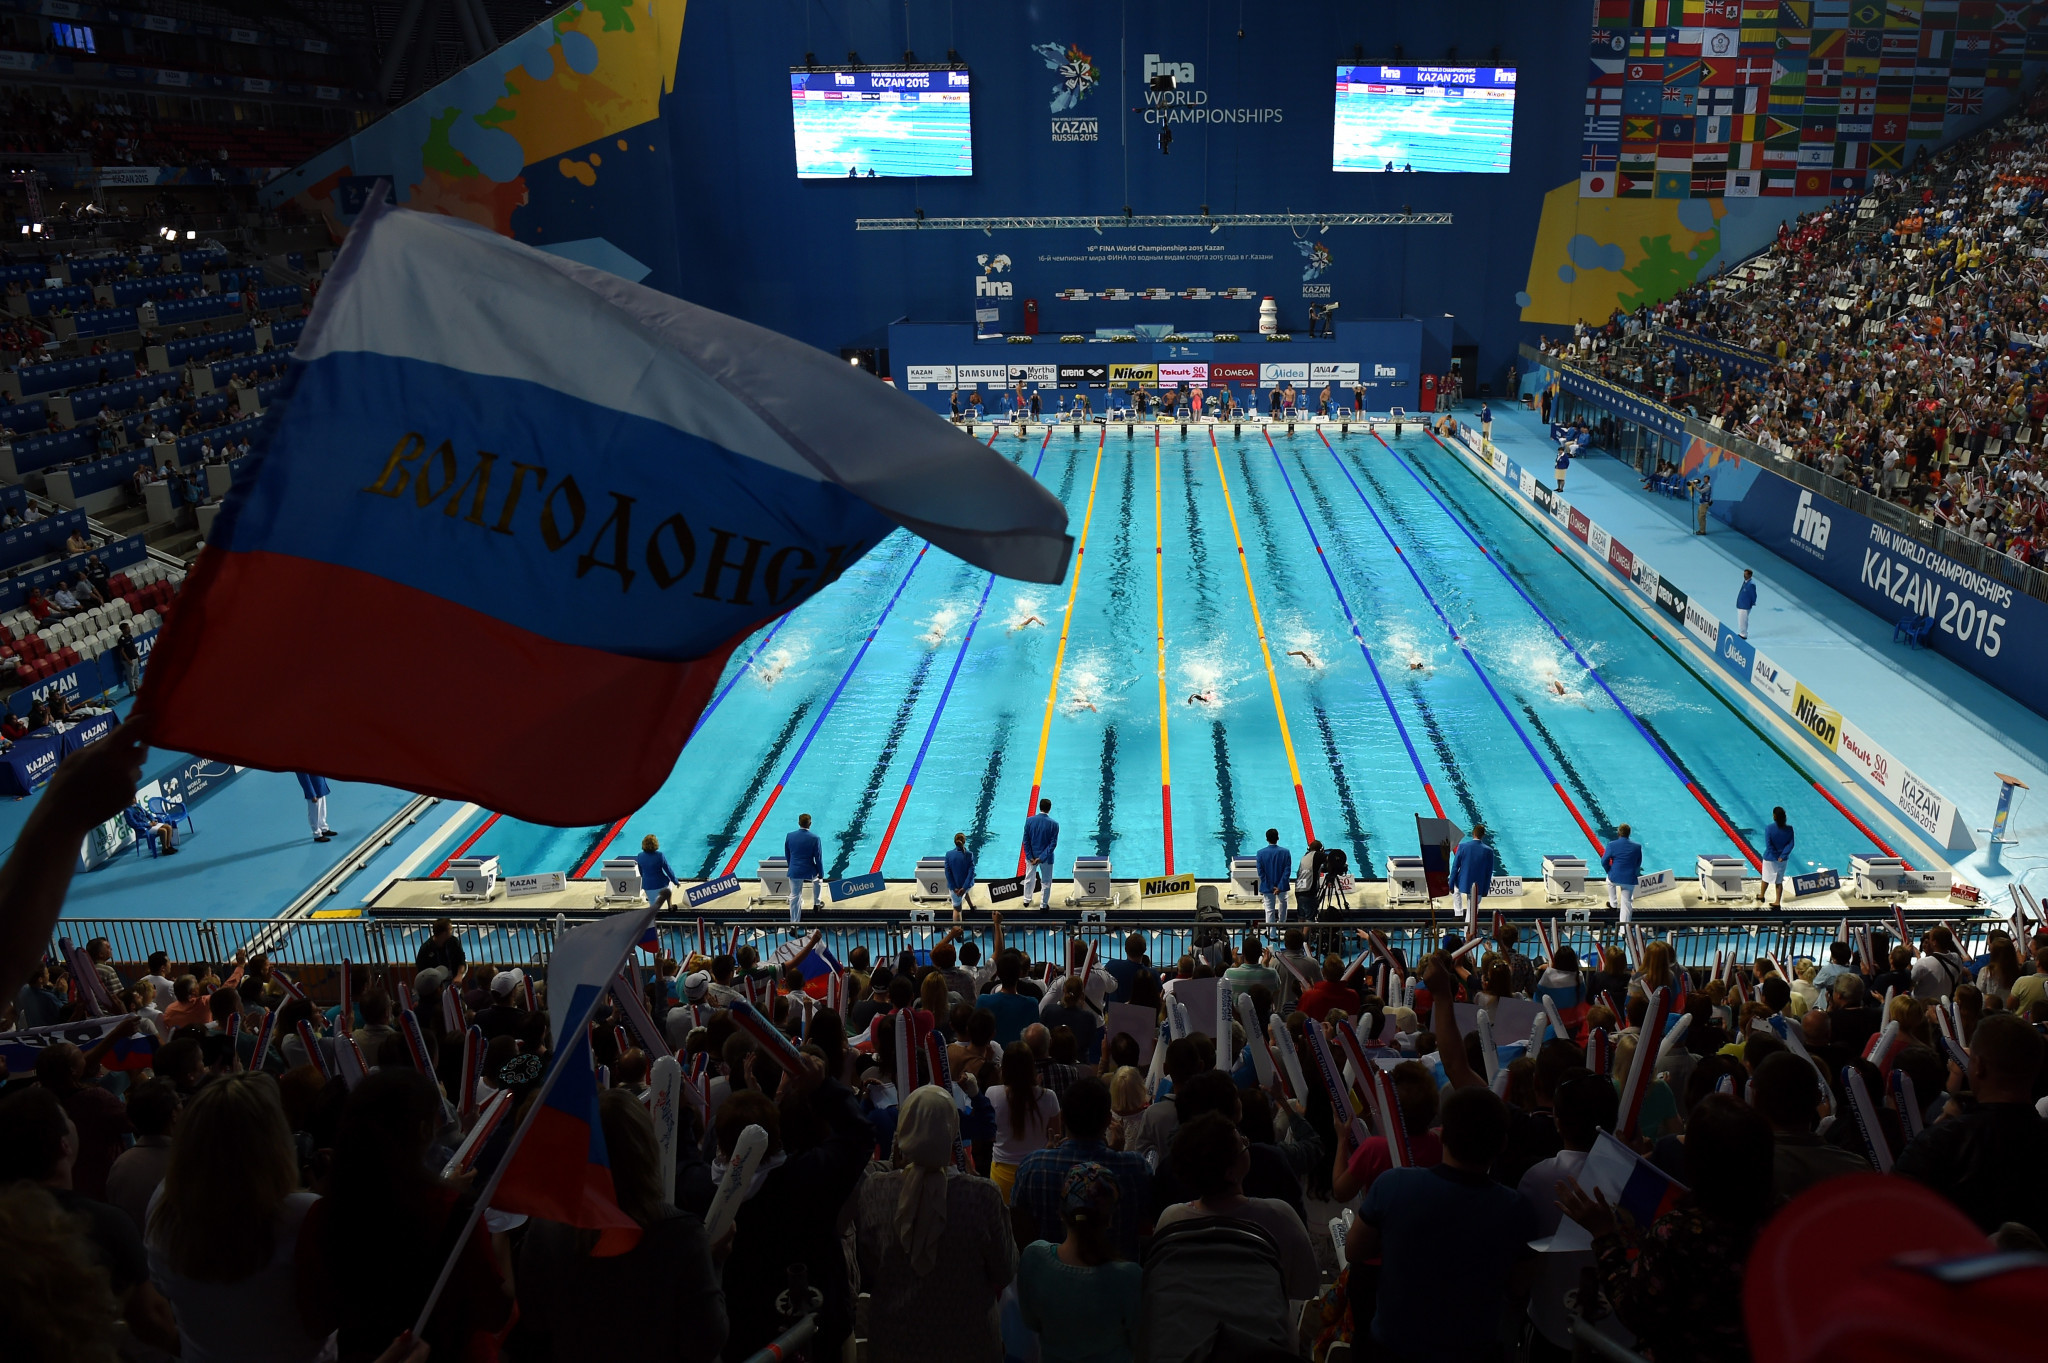 Kazan hosted the 2015 FINA World Championships and the 2013 Summer Universiade ©Getty Images